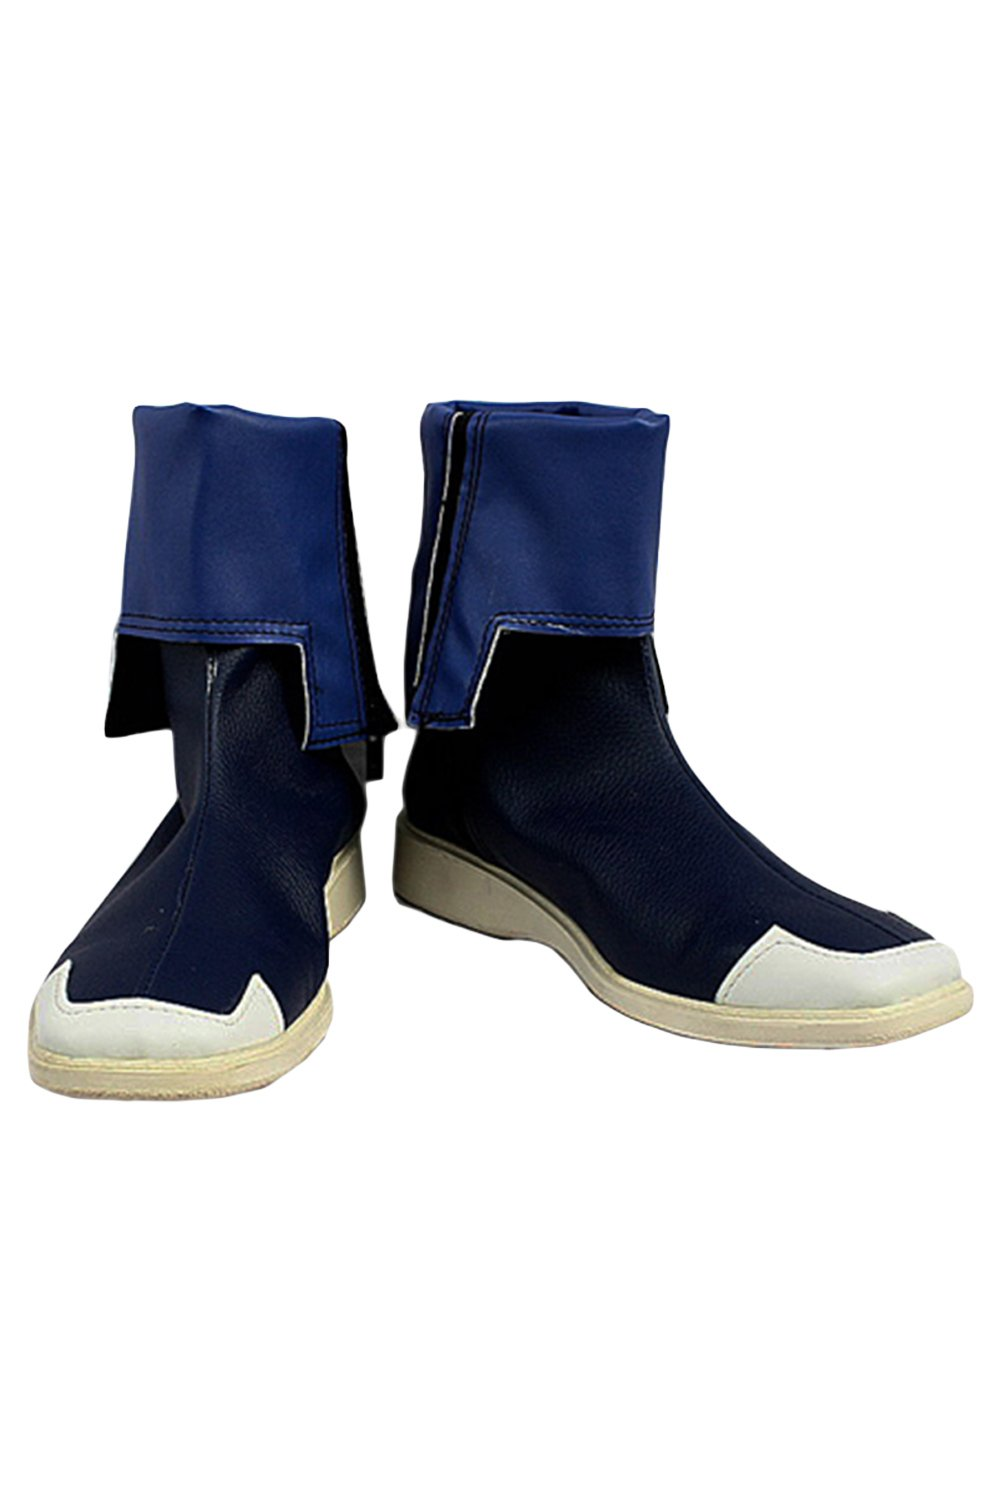 Mobile Suit Gundam SEED Auel Neider Cosplay Boots Shoes